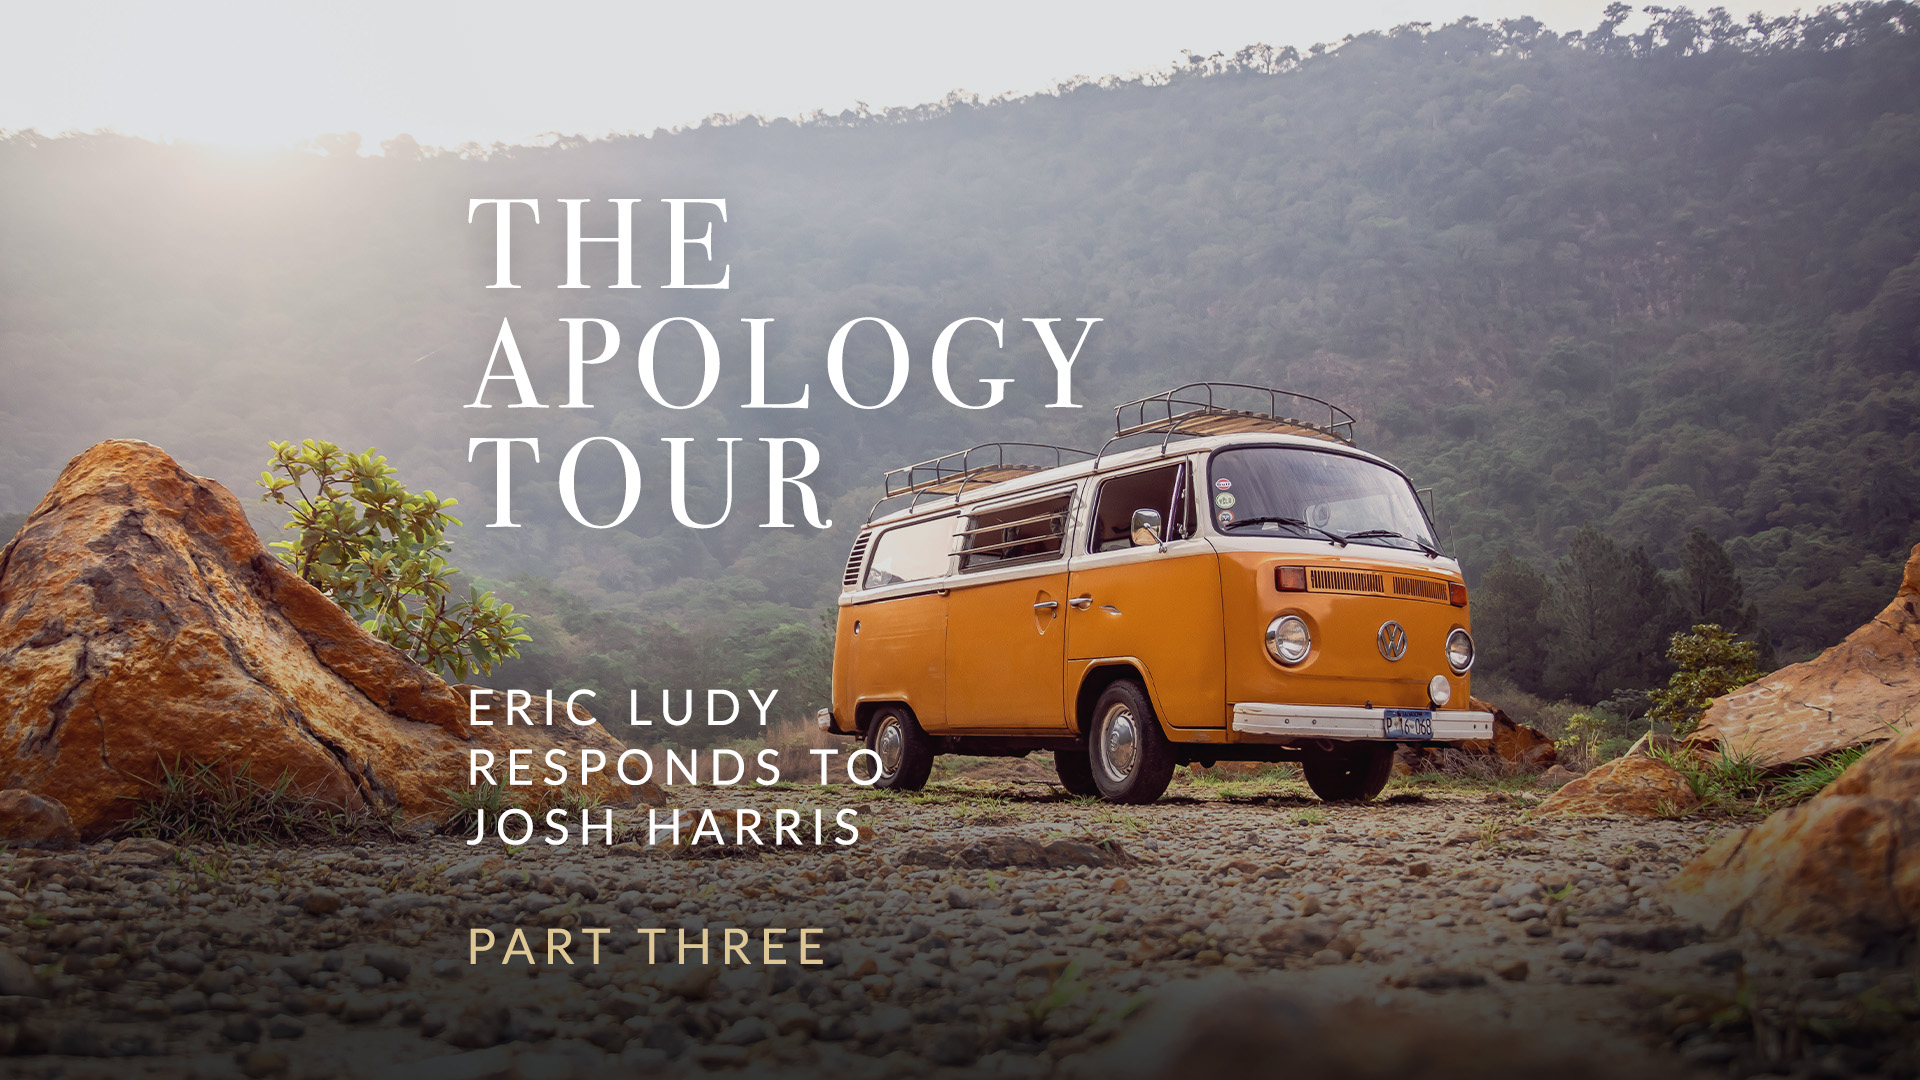 part-3-eric-ludy-upstages-joshua-harris-apology-tour